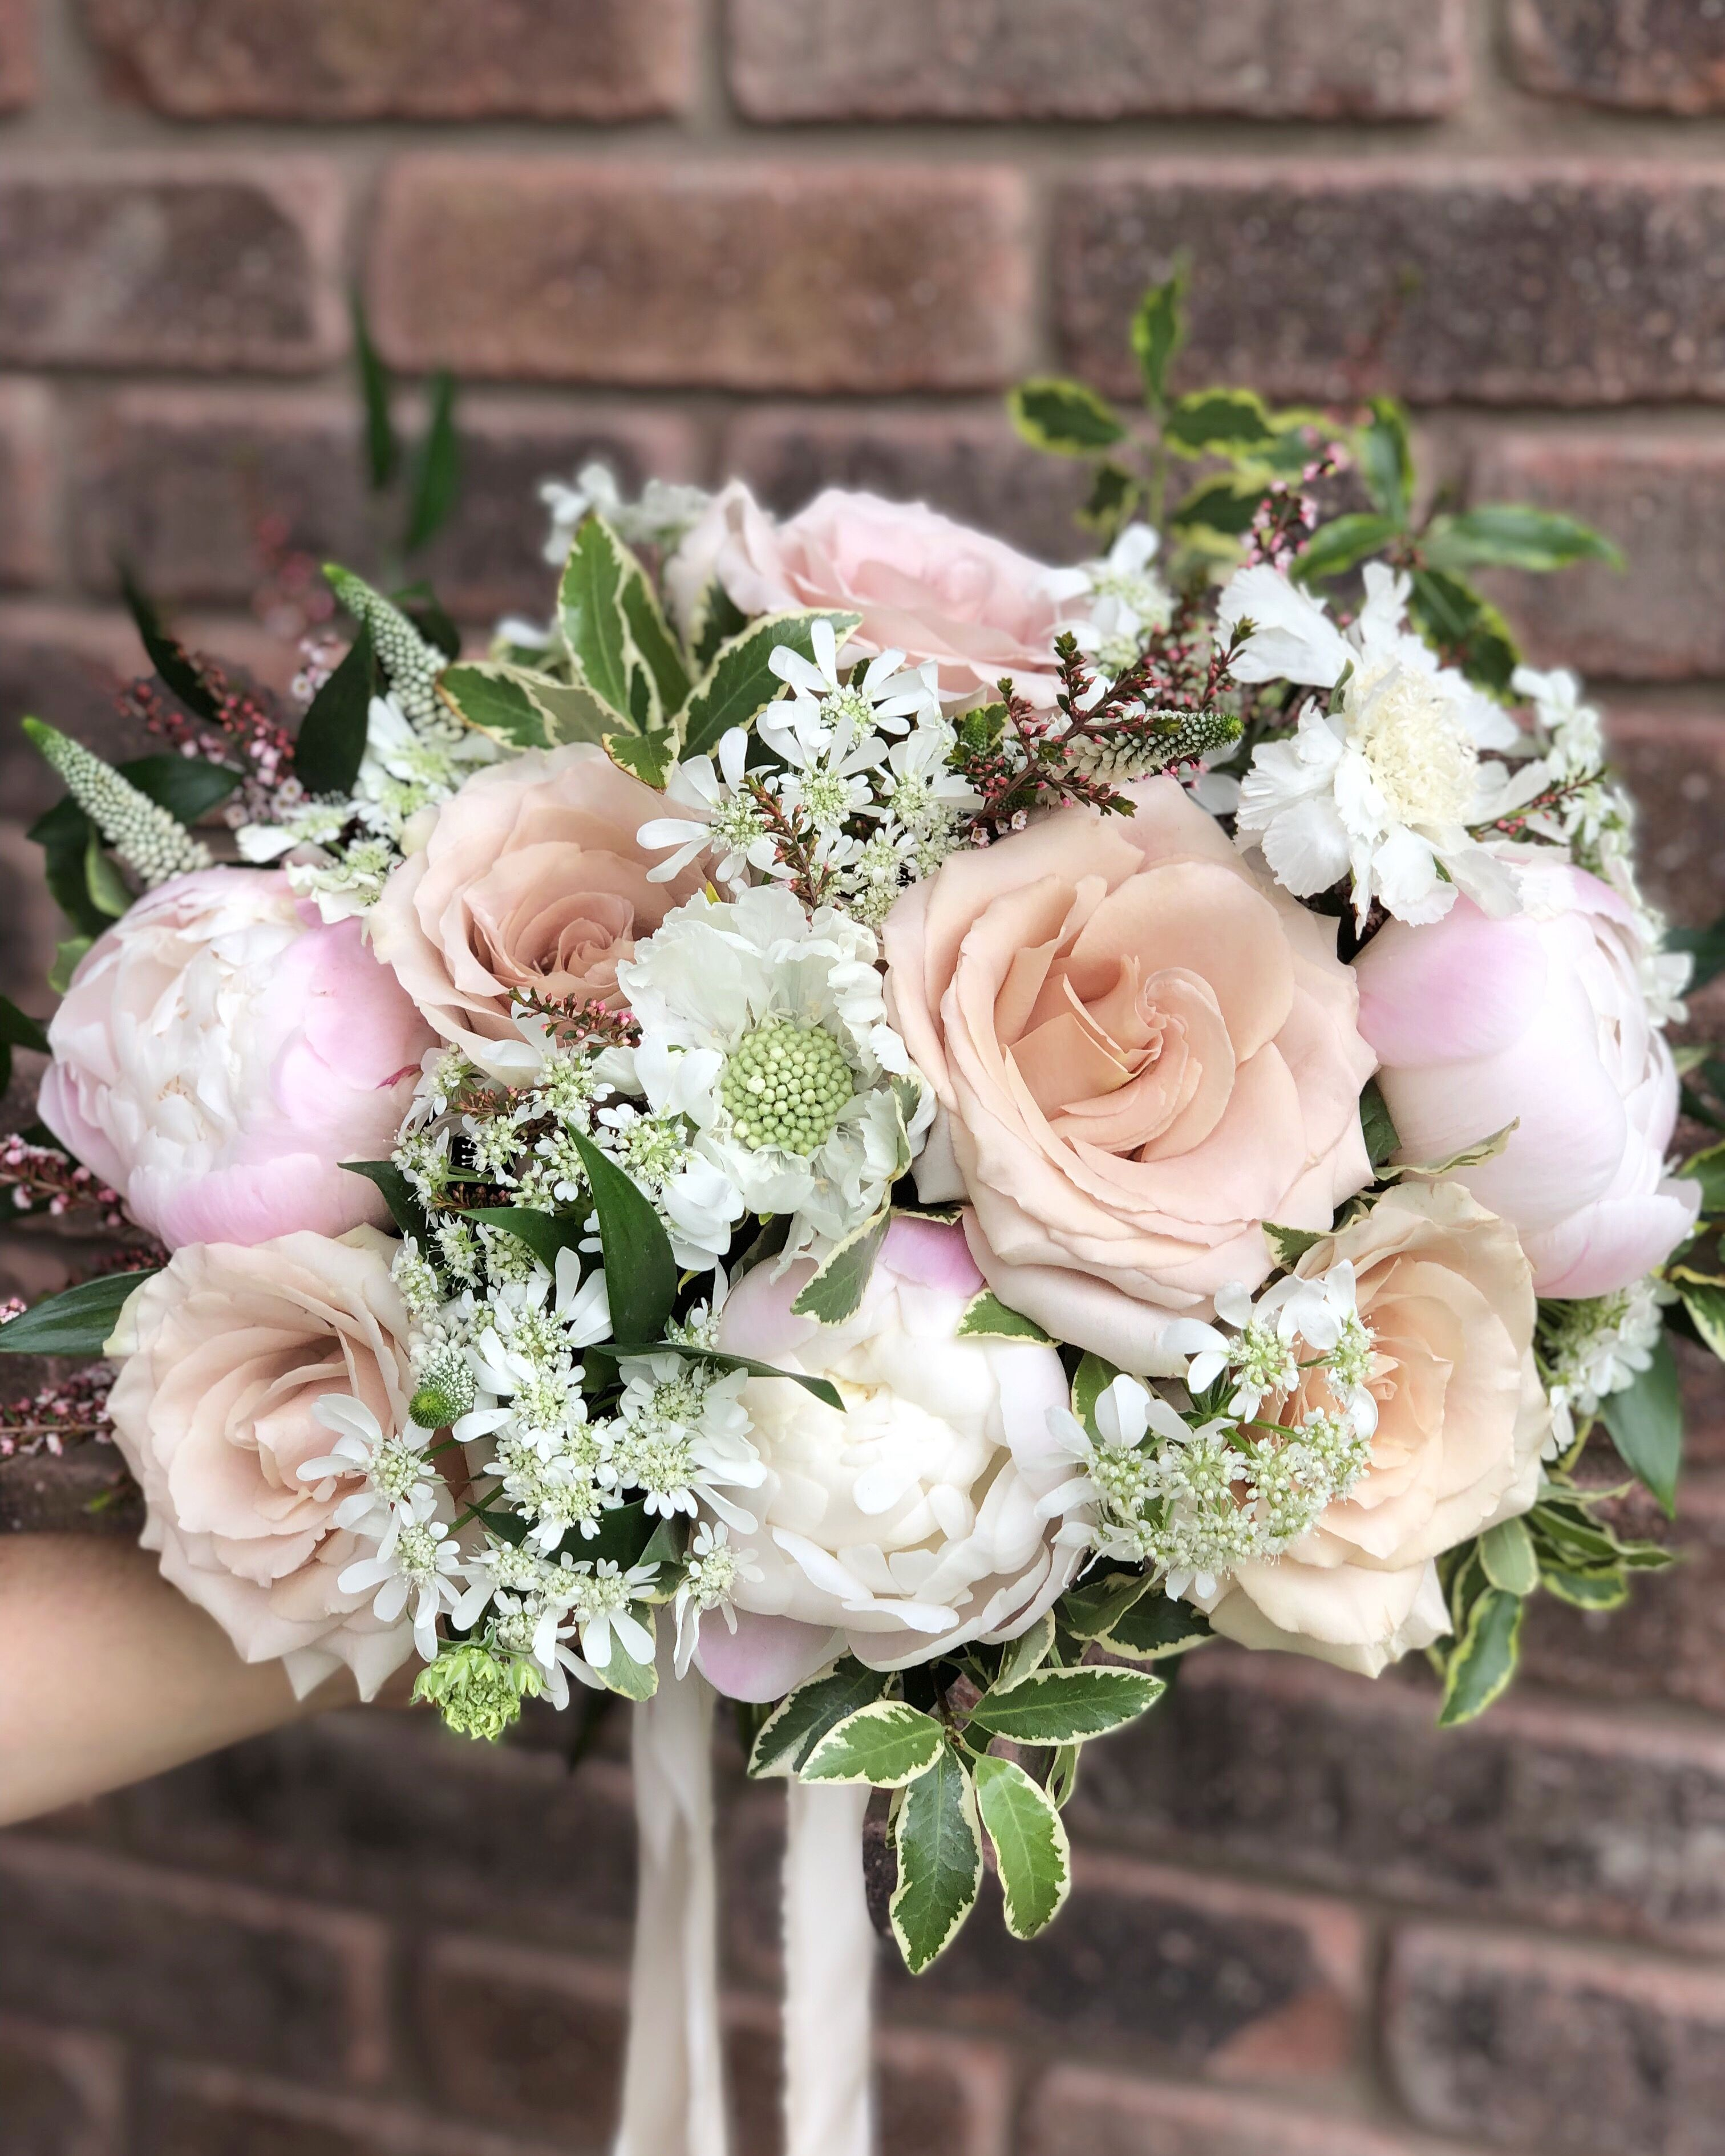 Blush Bridal Bouquet With Peonies Bridal Bouquet Blush Bridal Bouquet Wedding Flowers